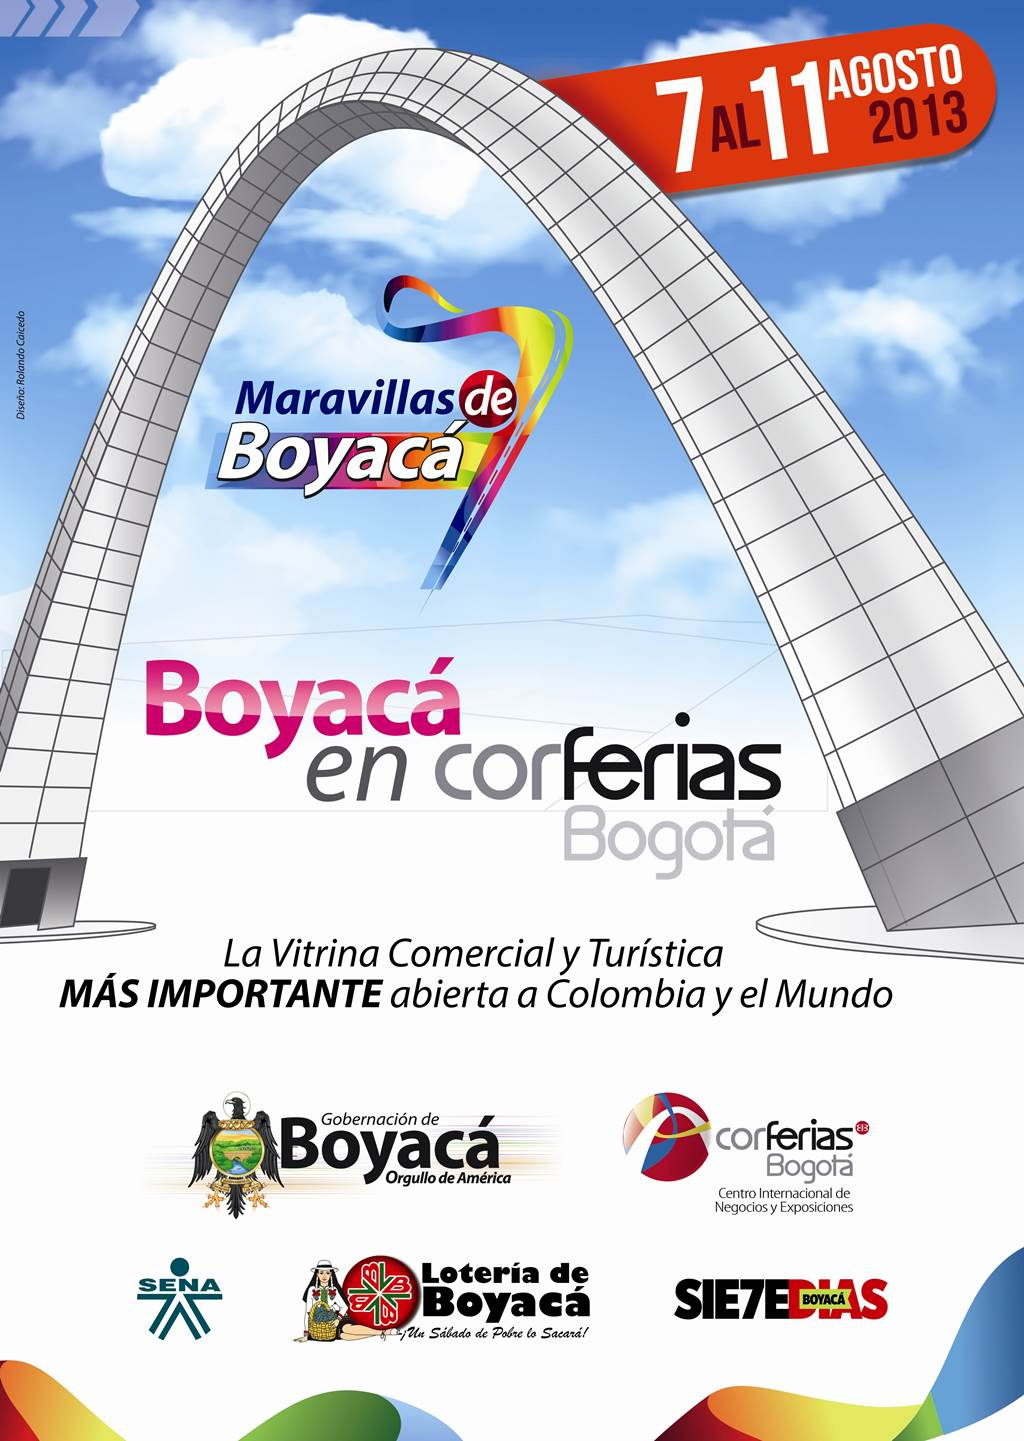 Maravillas de Boyac